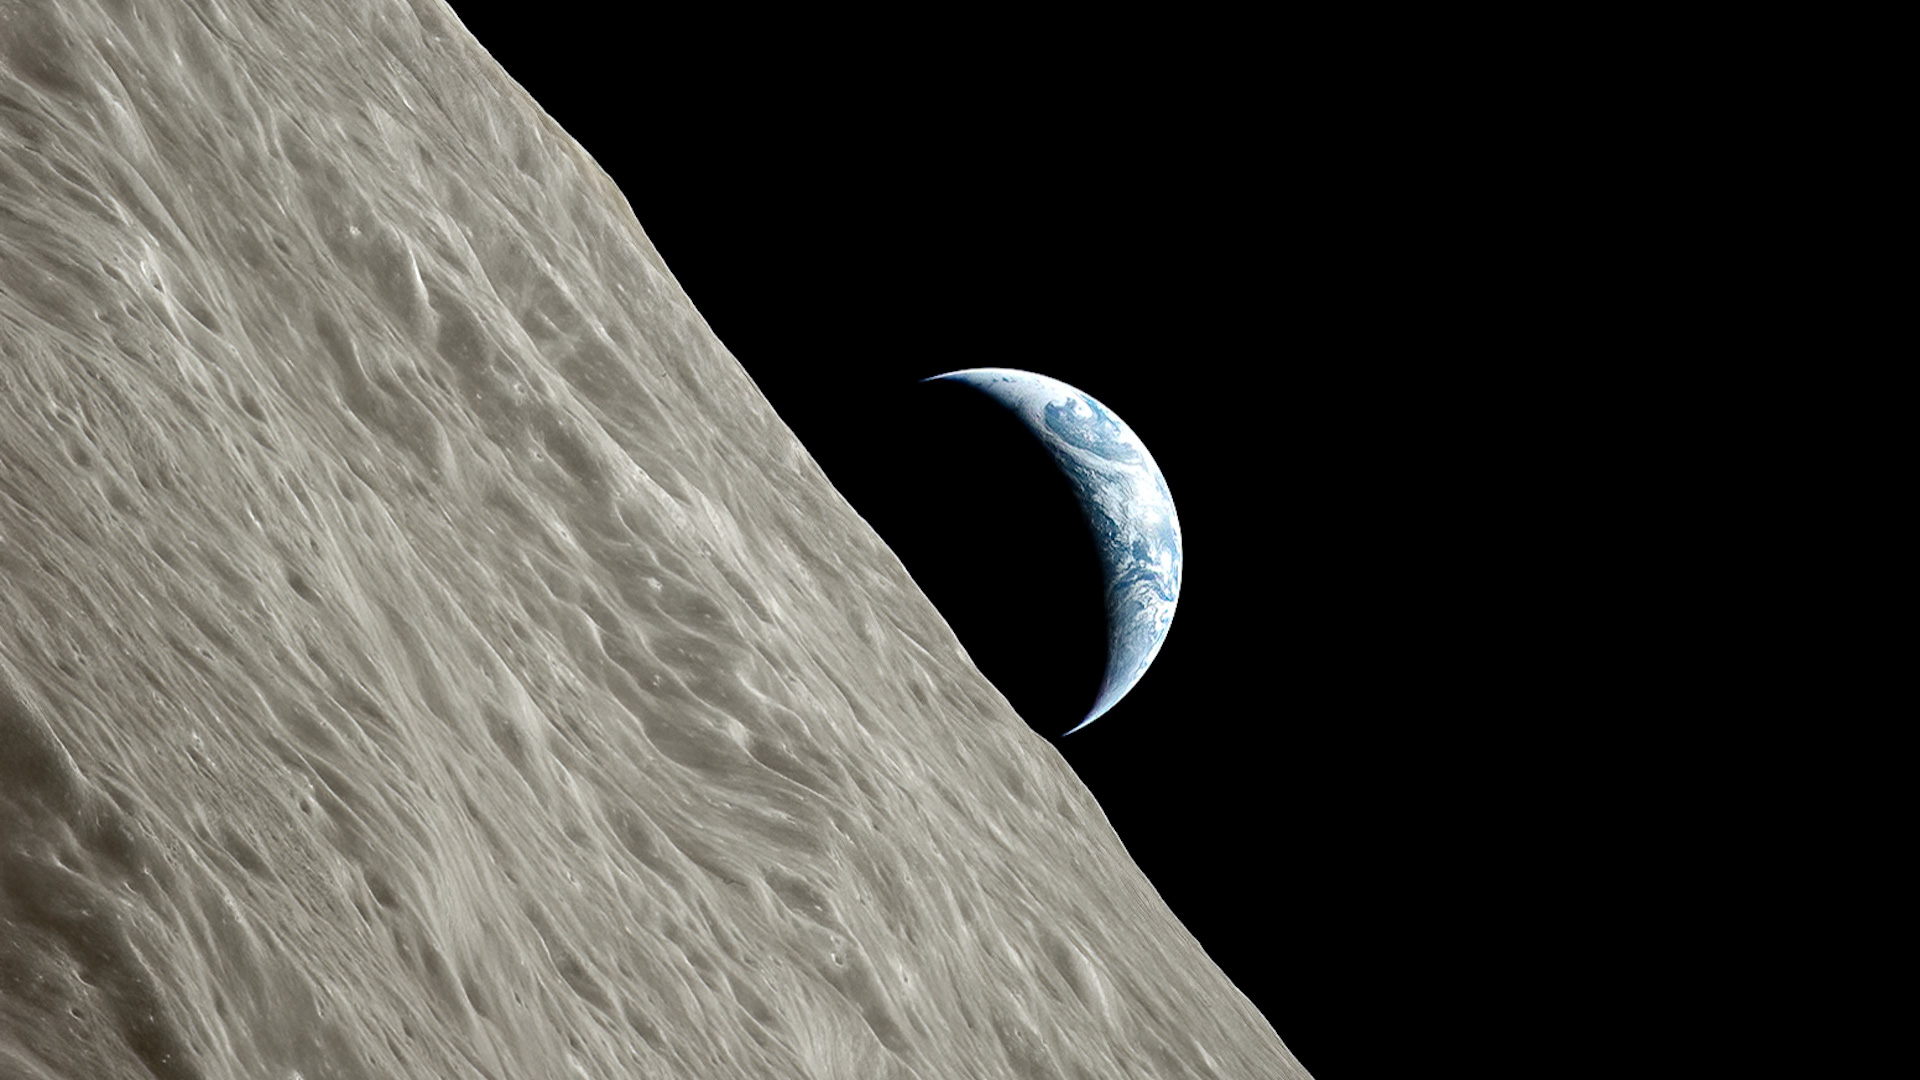 Photo of the Earth and Moon from Apollo 17, December 1972.